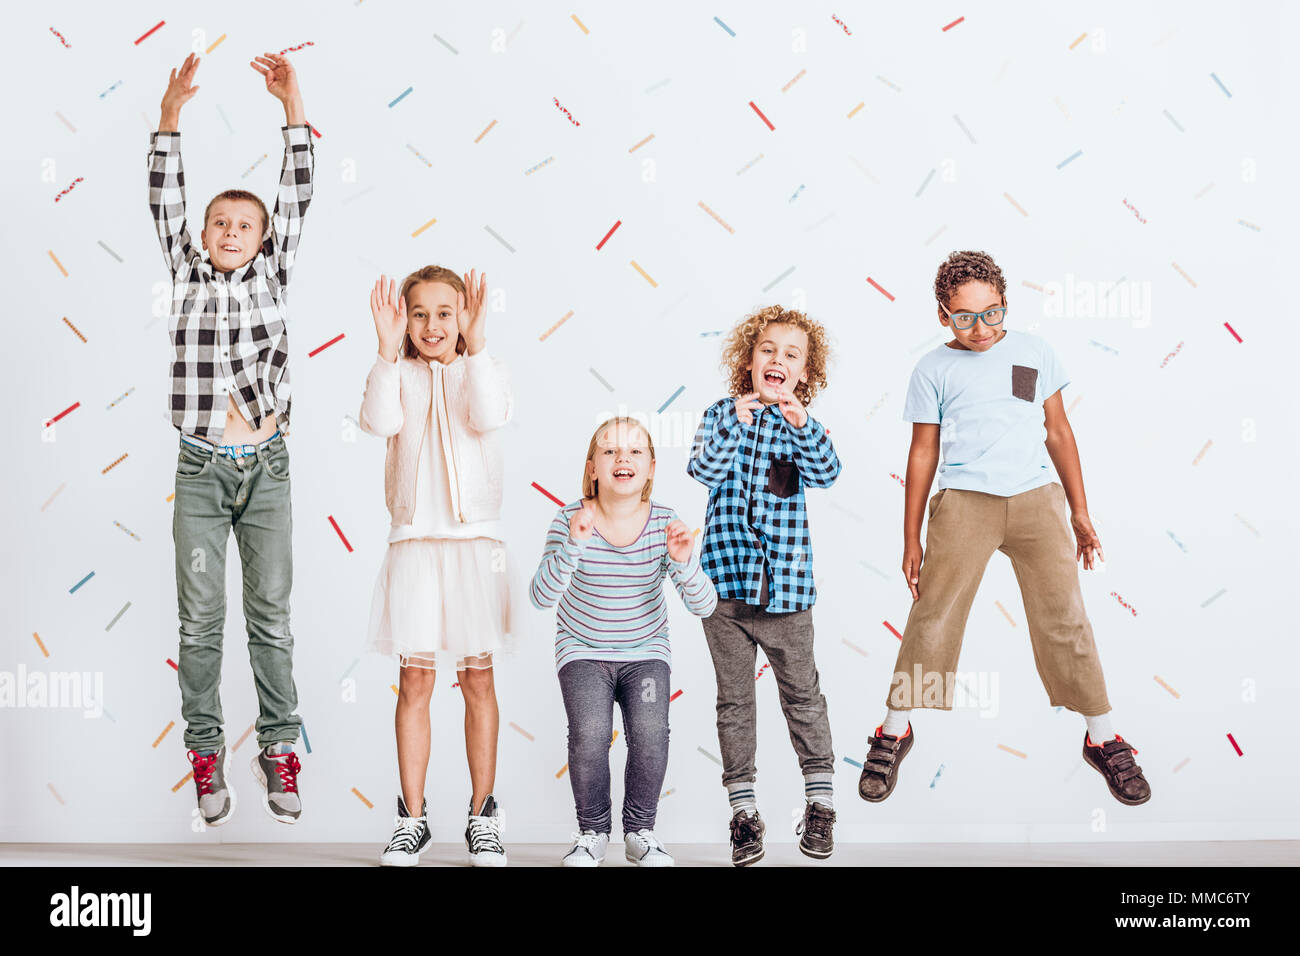 Happy girls and boys jumping in a room - Stock Image